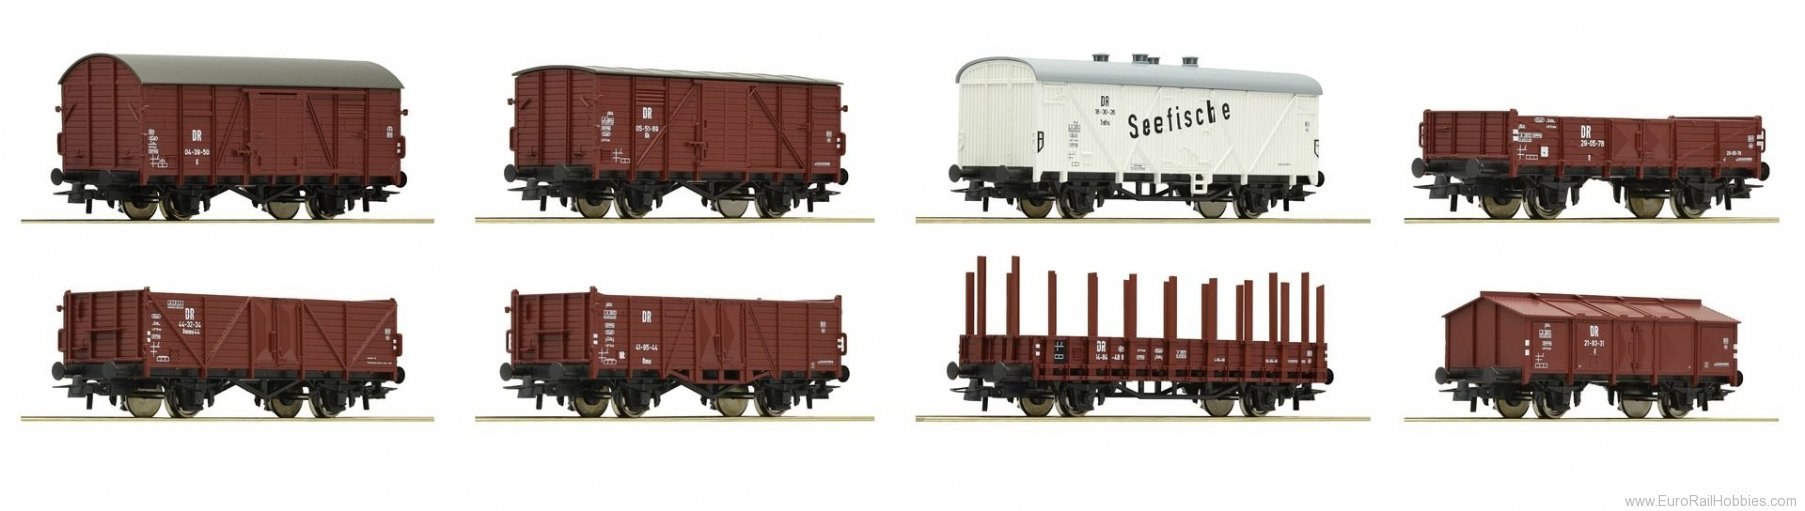 Roco 67127 8-piece set freight cars, DR